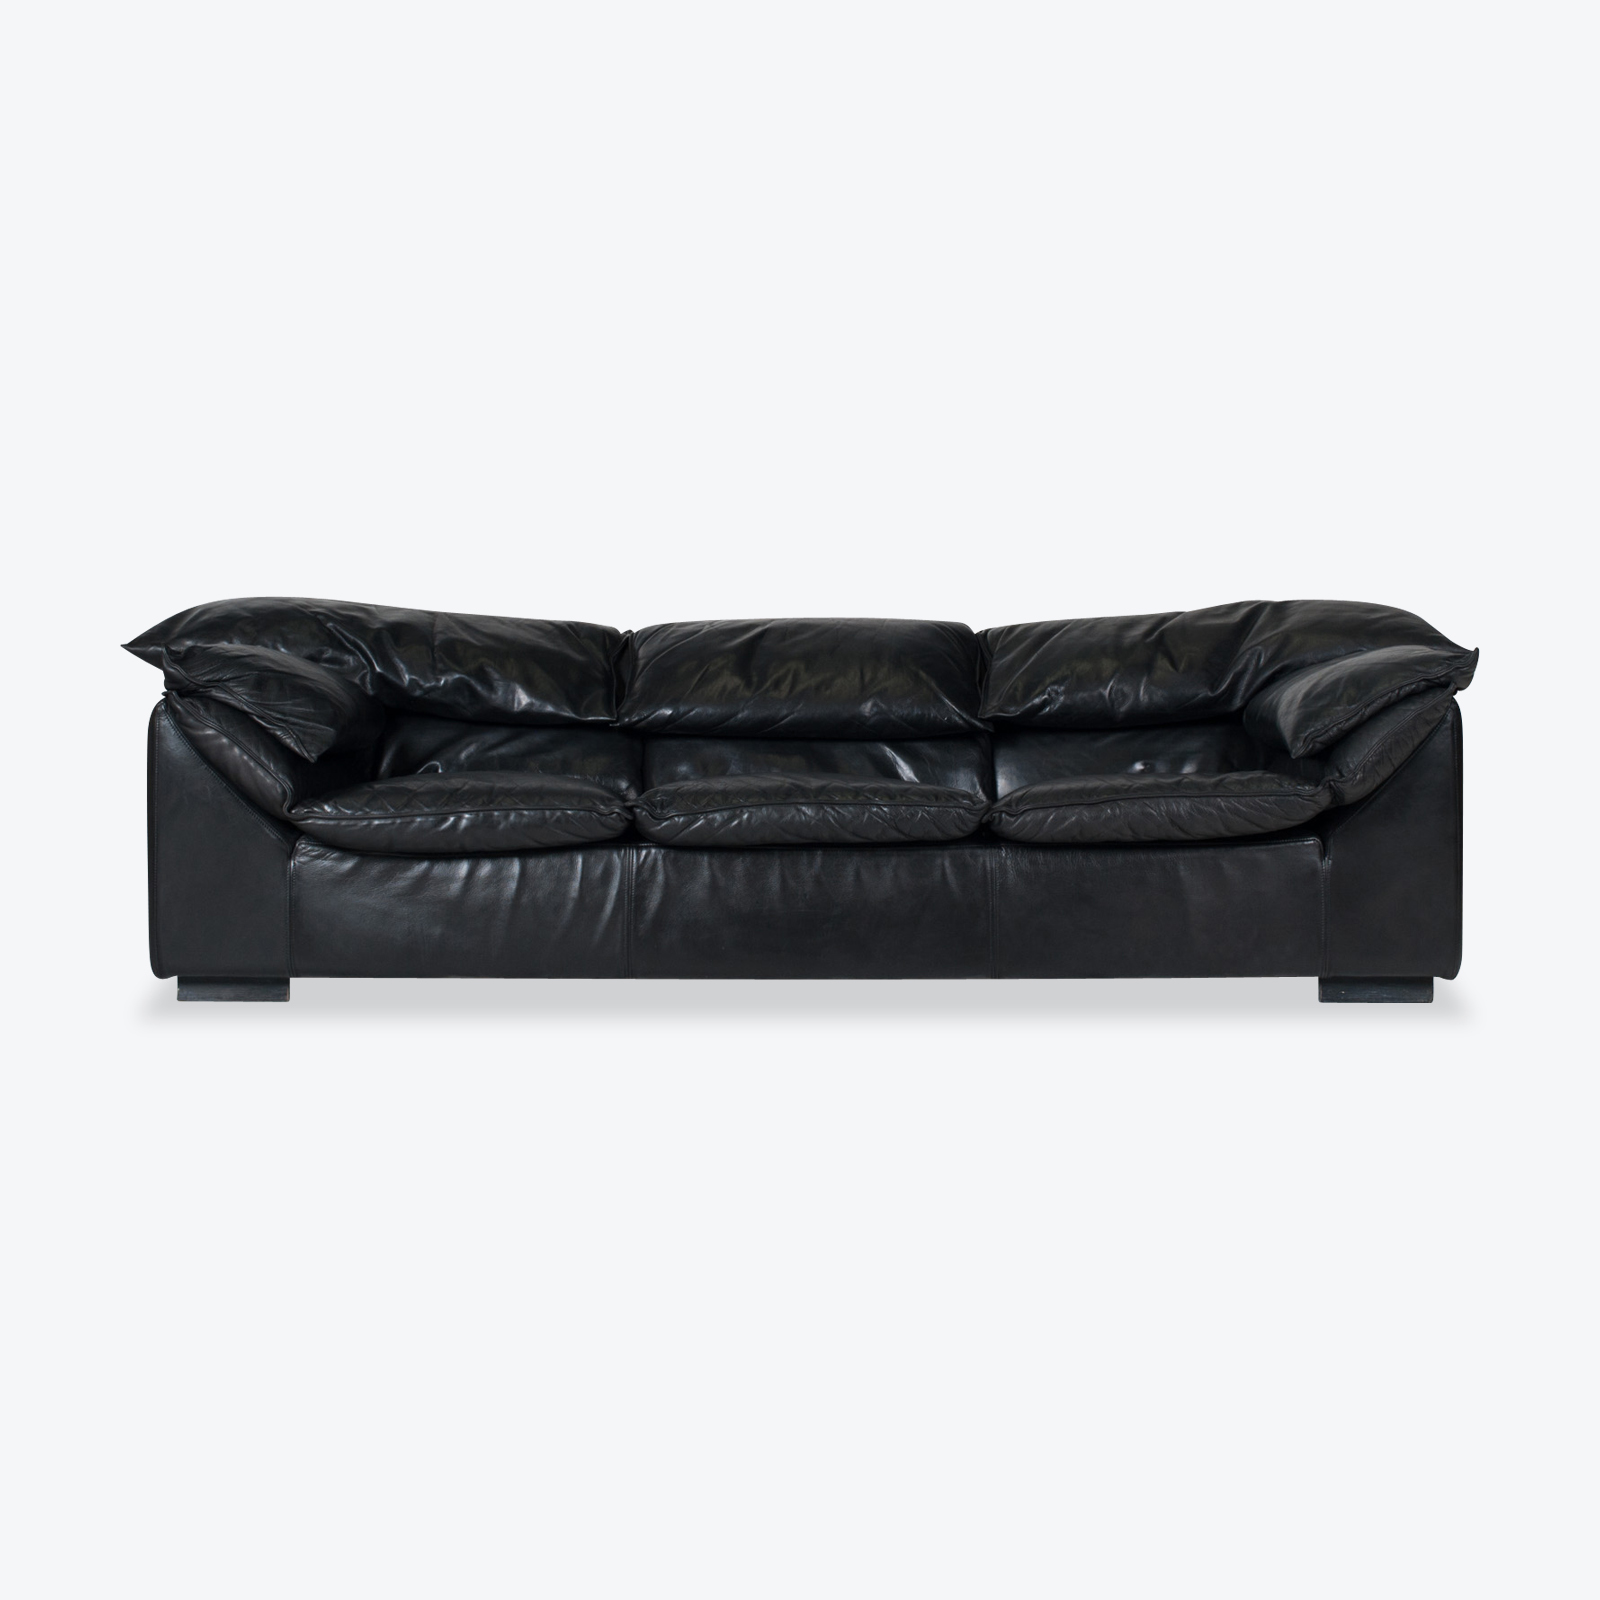 Model Monza 3 Seat Sofa By Eilerson In Black Leather 1970s Denmark 01